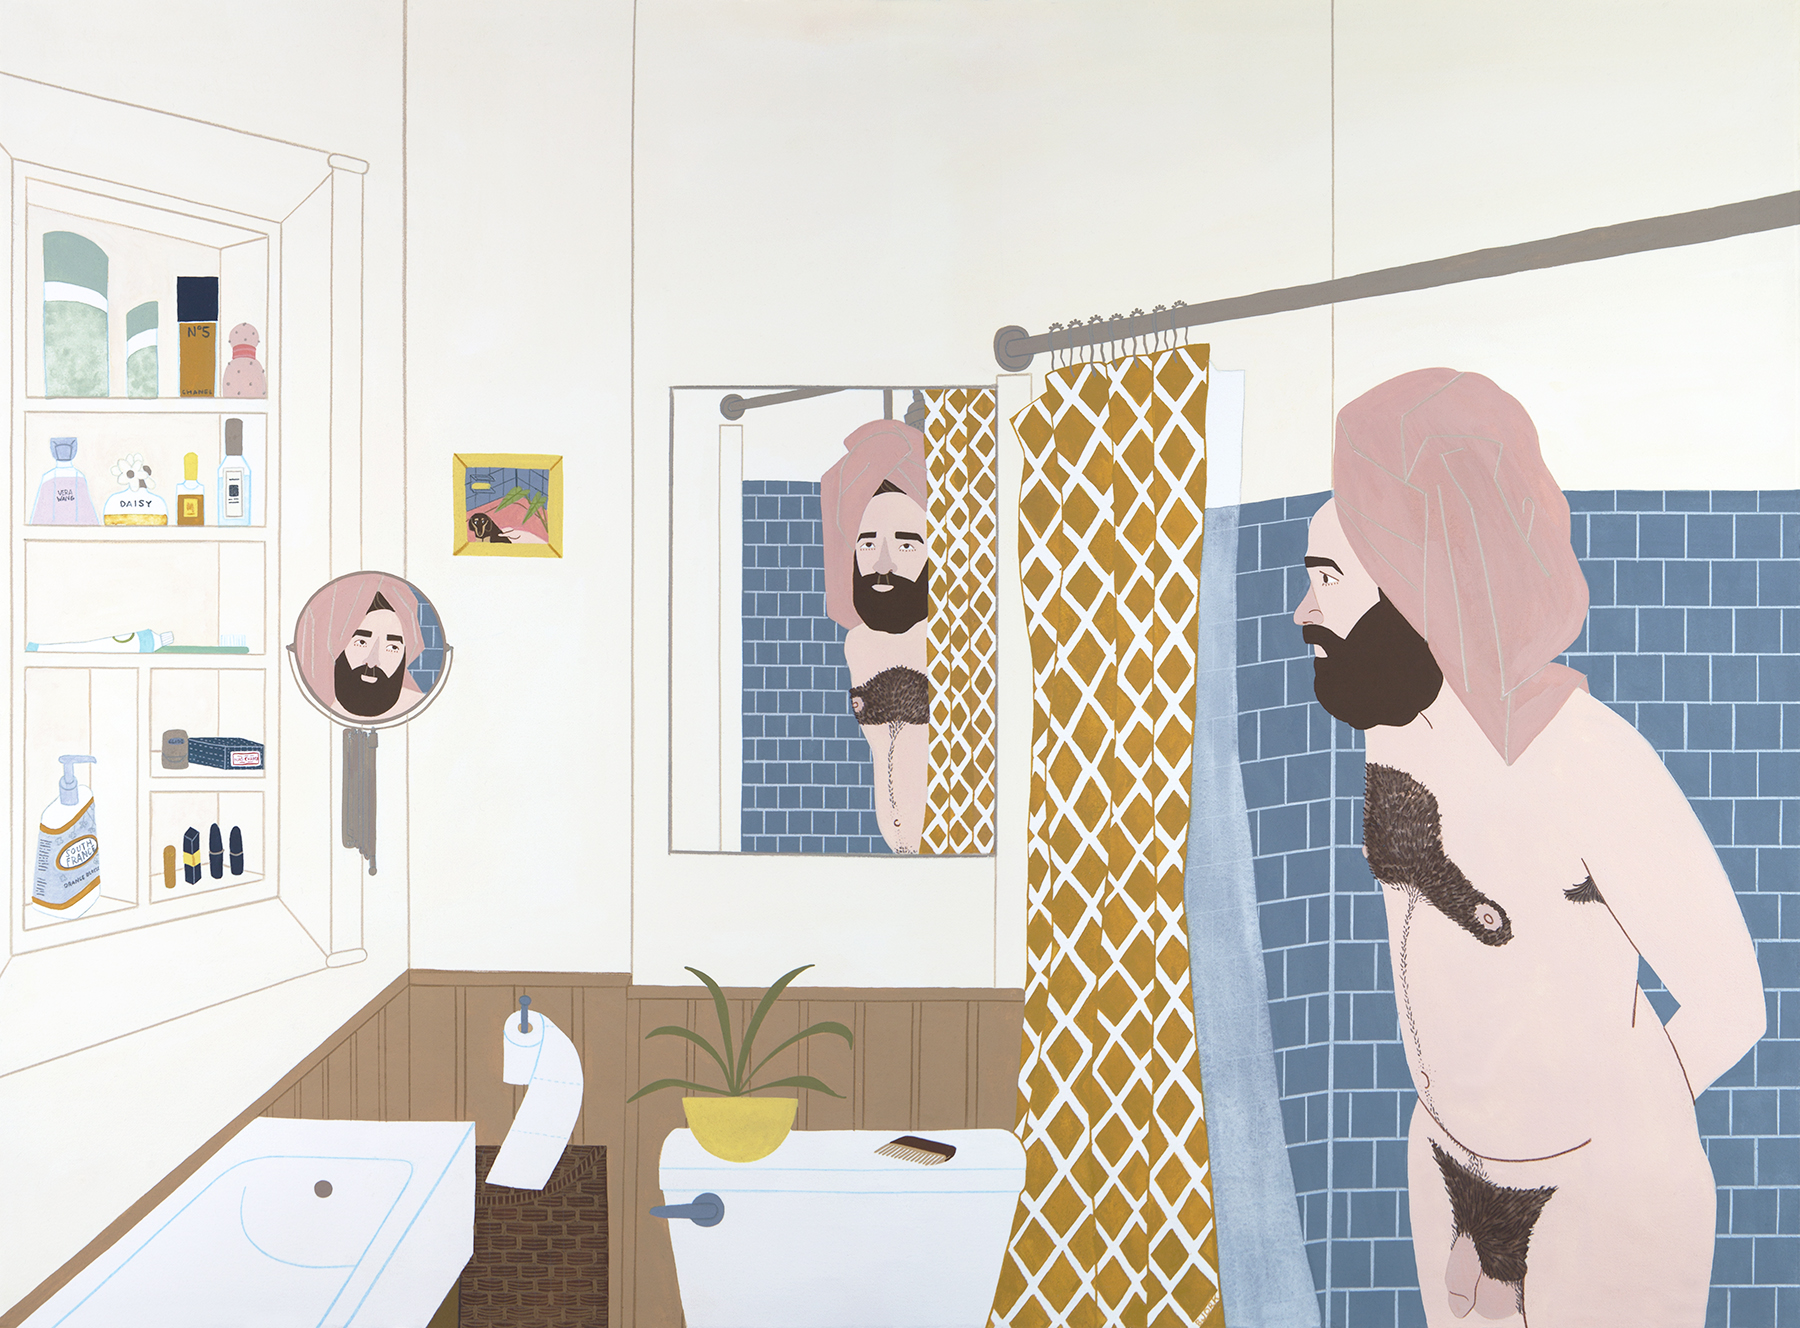 Shower Talk  , gouache + pencil on paper, 2018